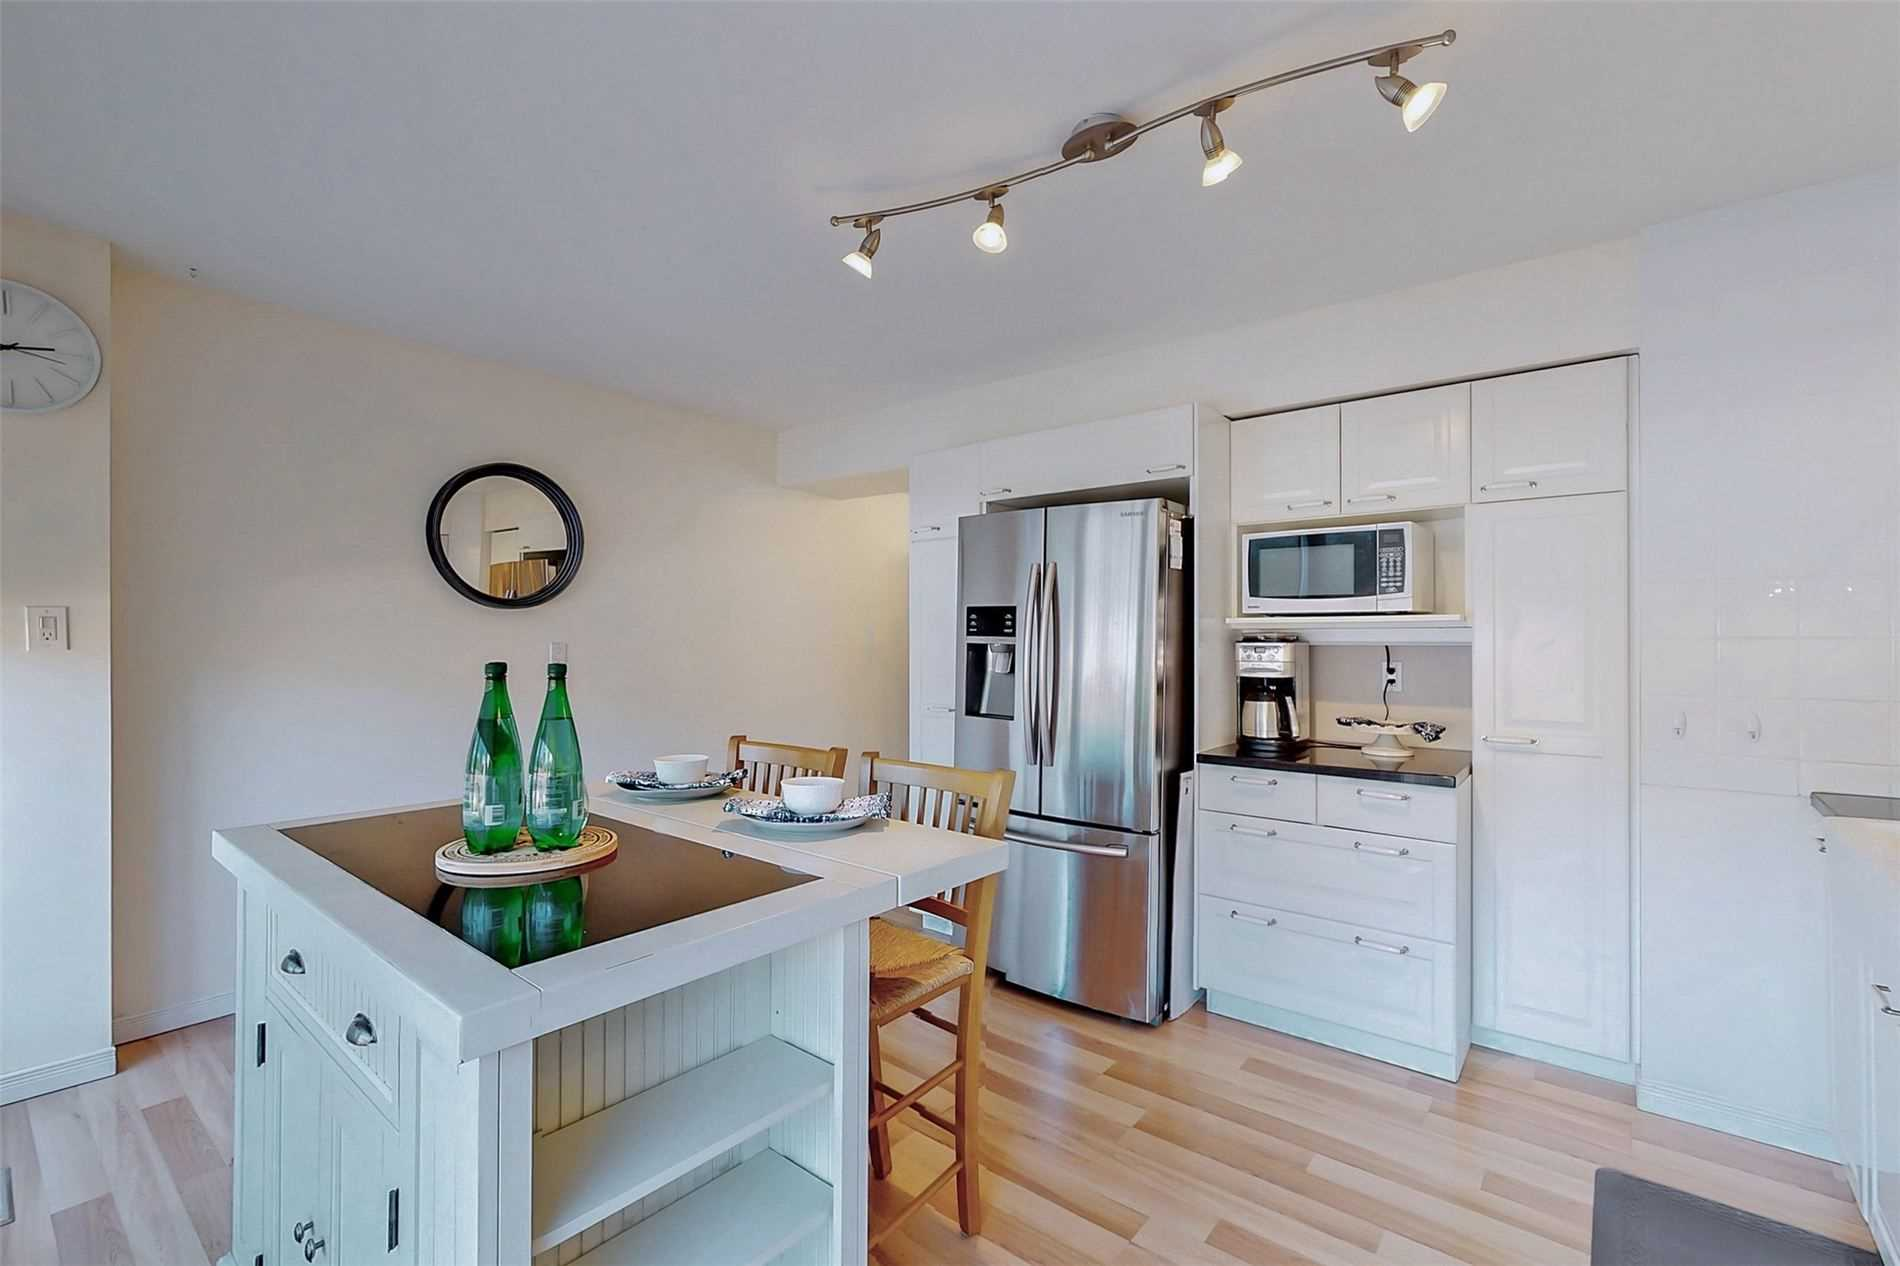 Image 14 of 40 showing inside of 3 Bedroom Condo Townhouse 3-Storey for Sale at 14 Cumberland Lane Unit# 7, Ajax L1S7K4